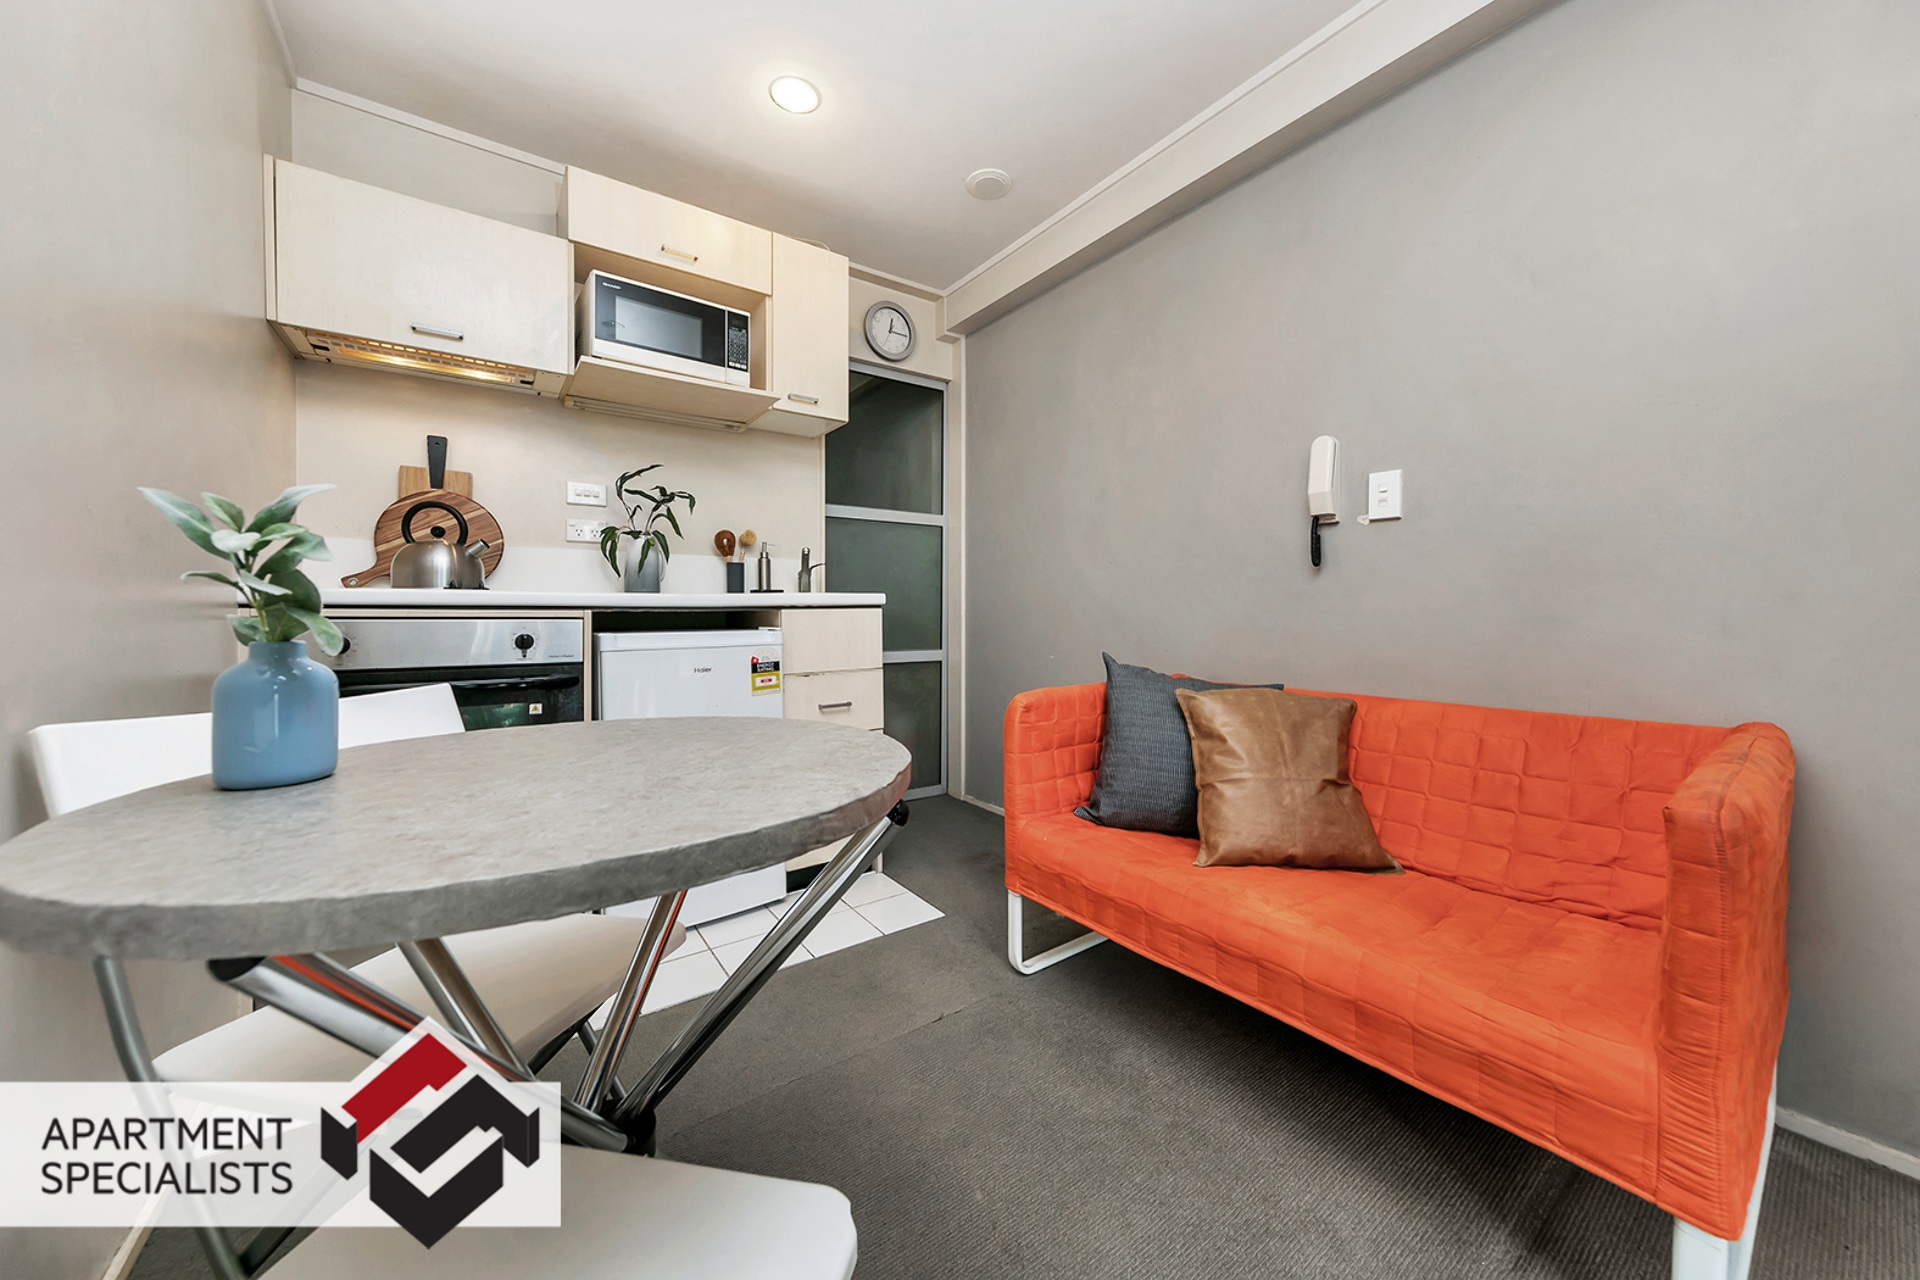 Hero | 72 Nelson Street, City Centre | Apartment Specialists